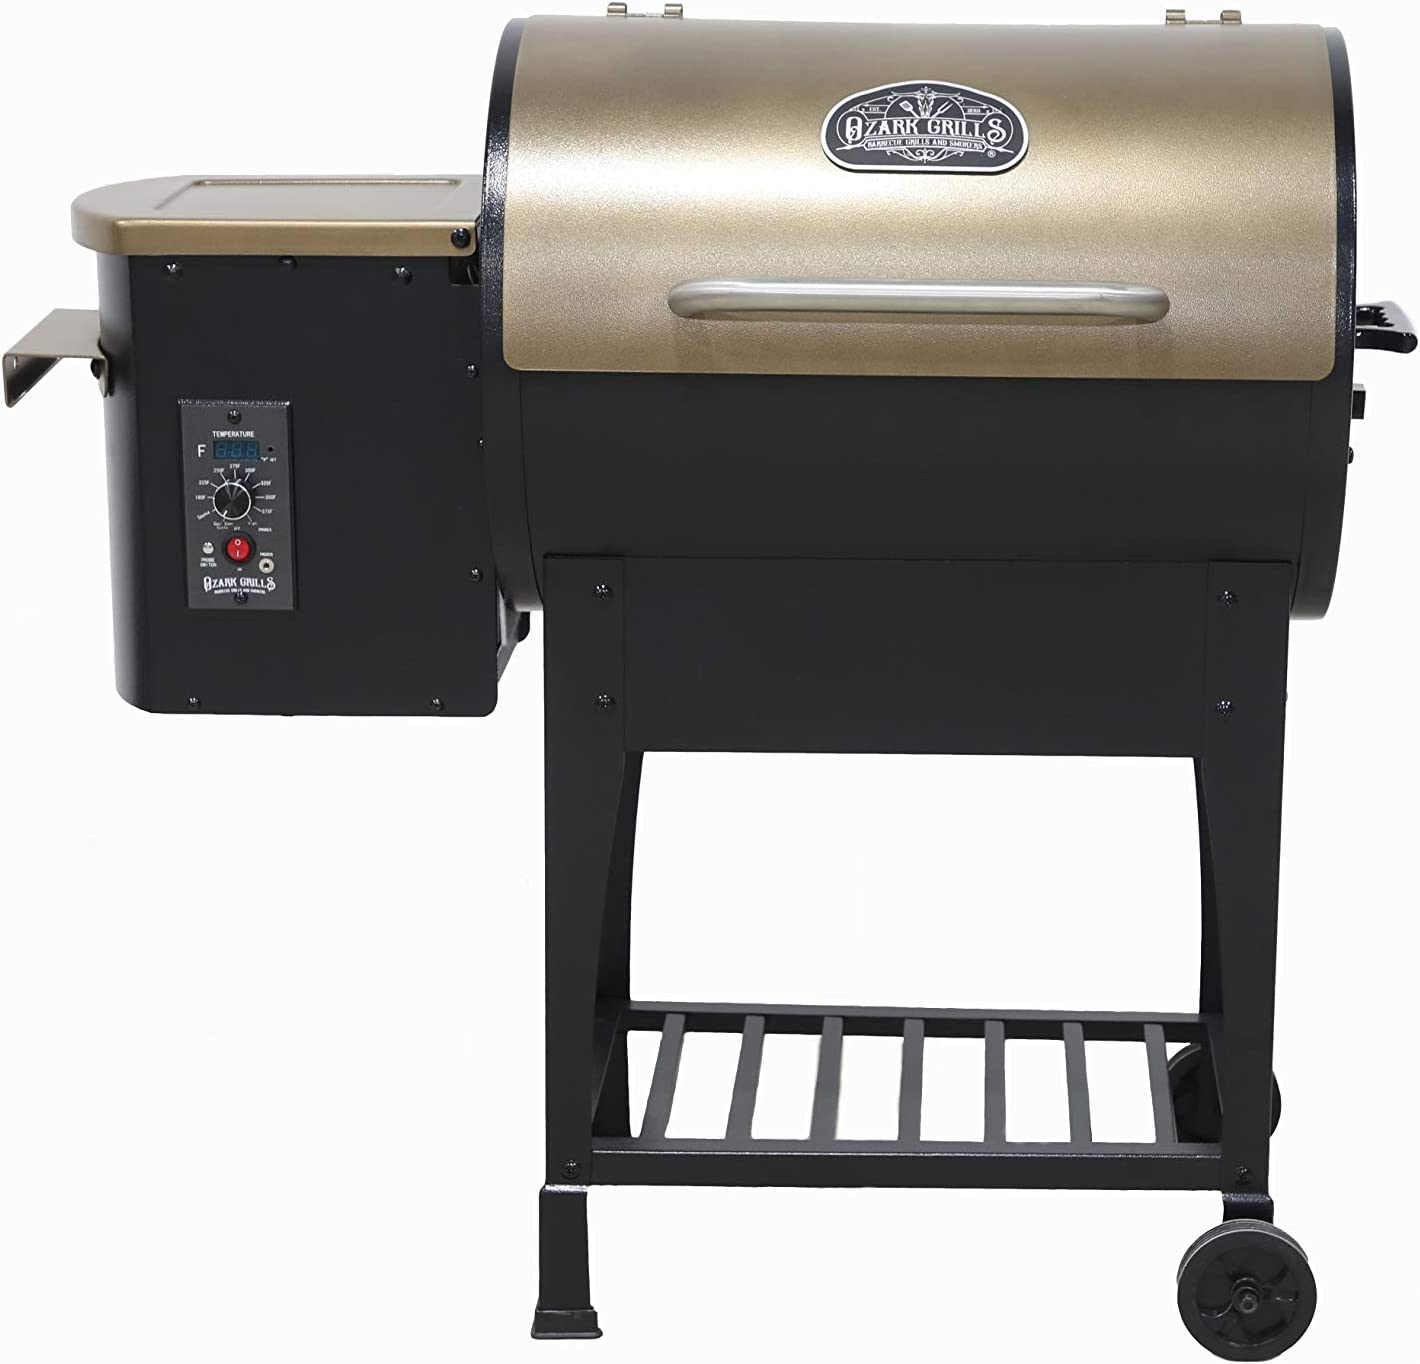 Ozark Grills – The Razorback Wood Pellet Grill and Smoker with Temperature Probe, 11 Pound Hopper, 352 Square Inch Cooking Area